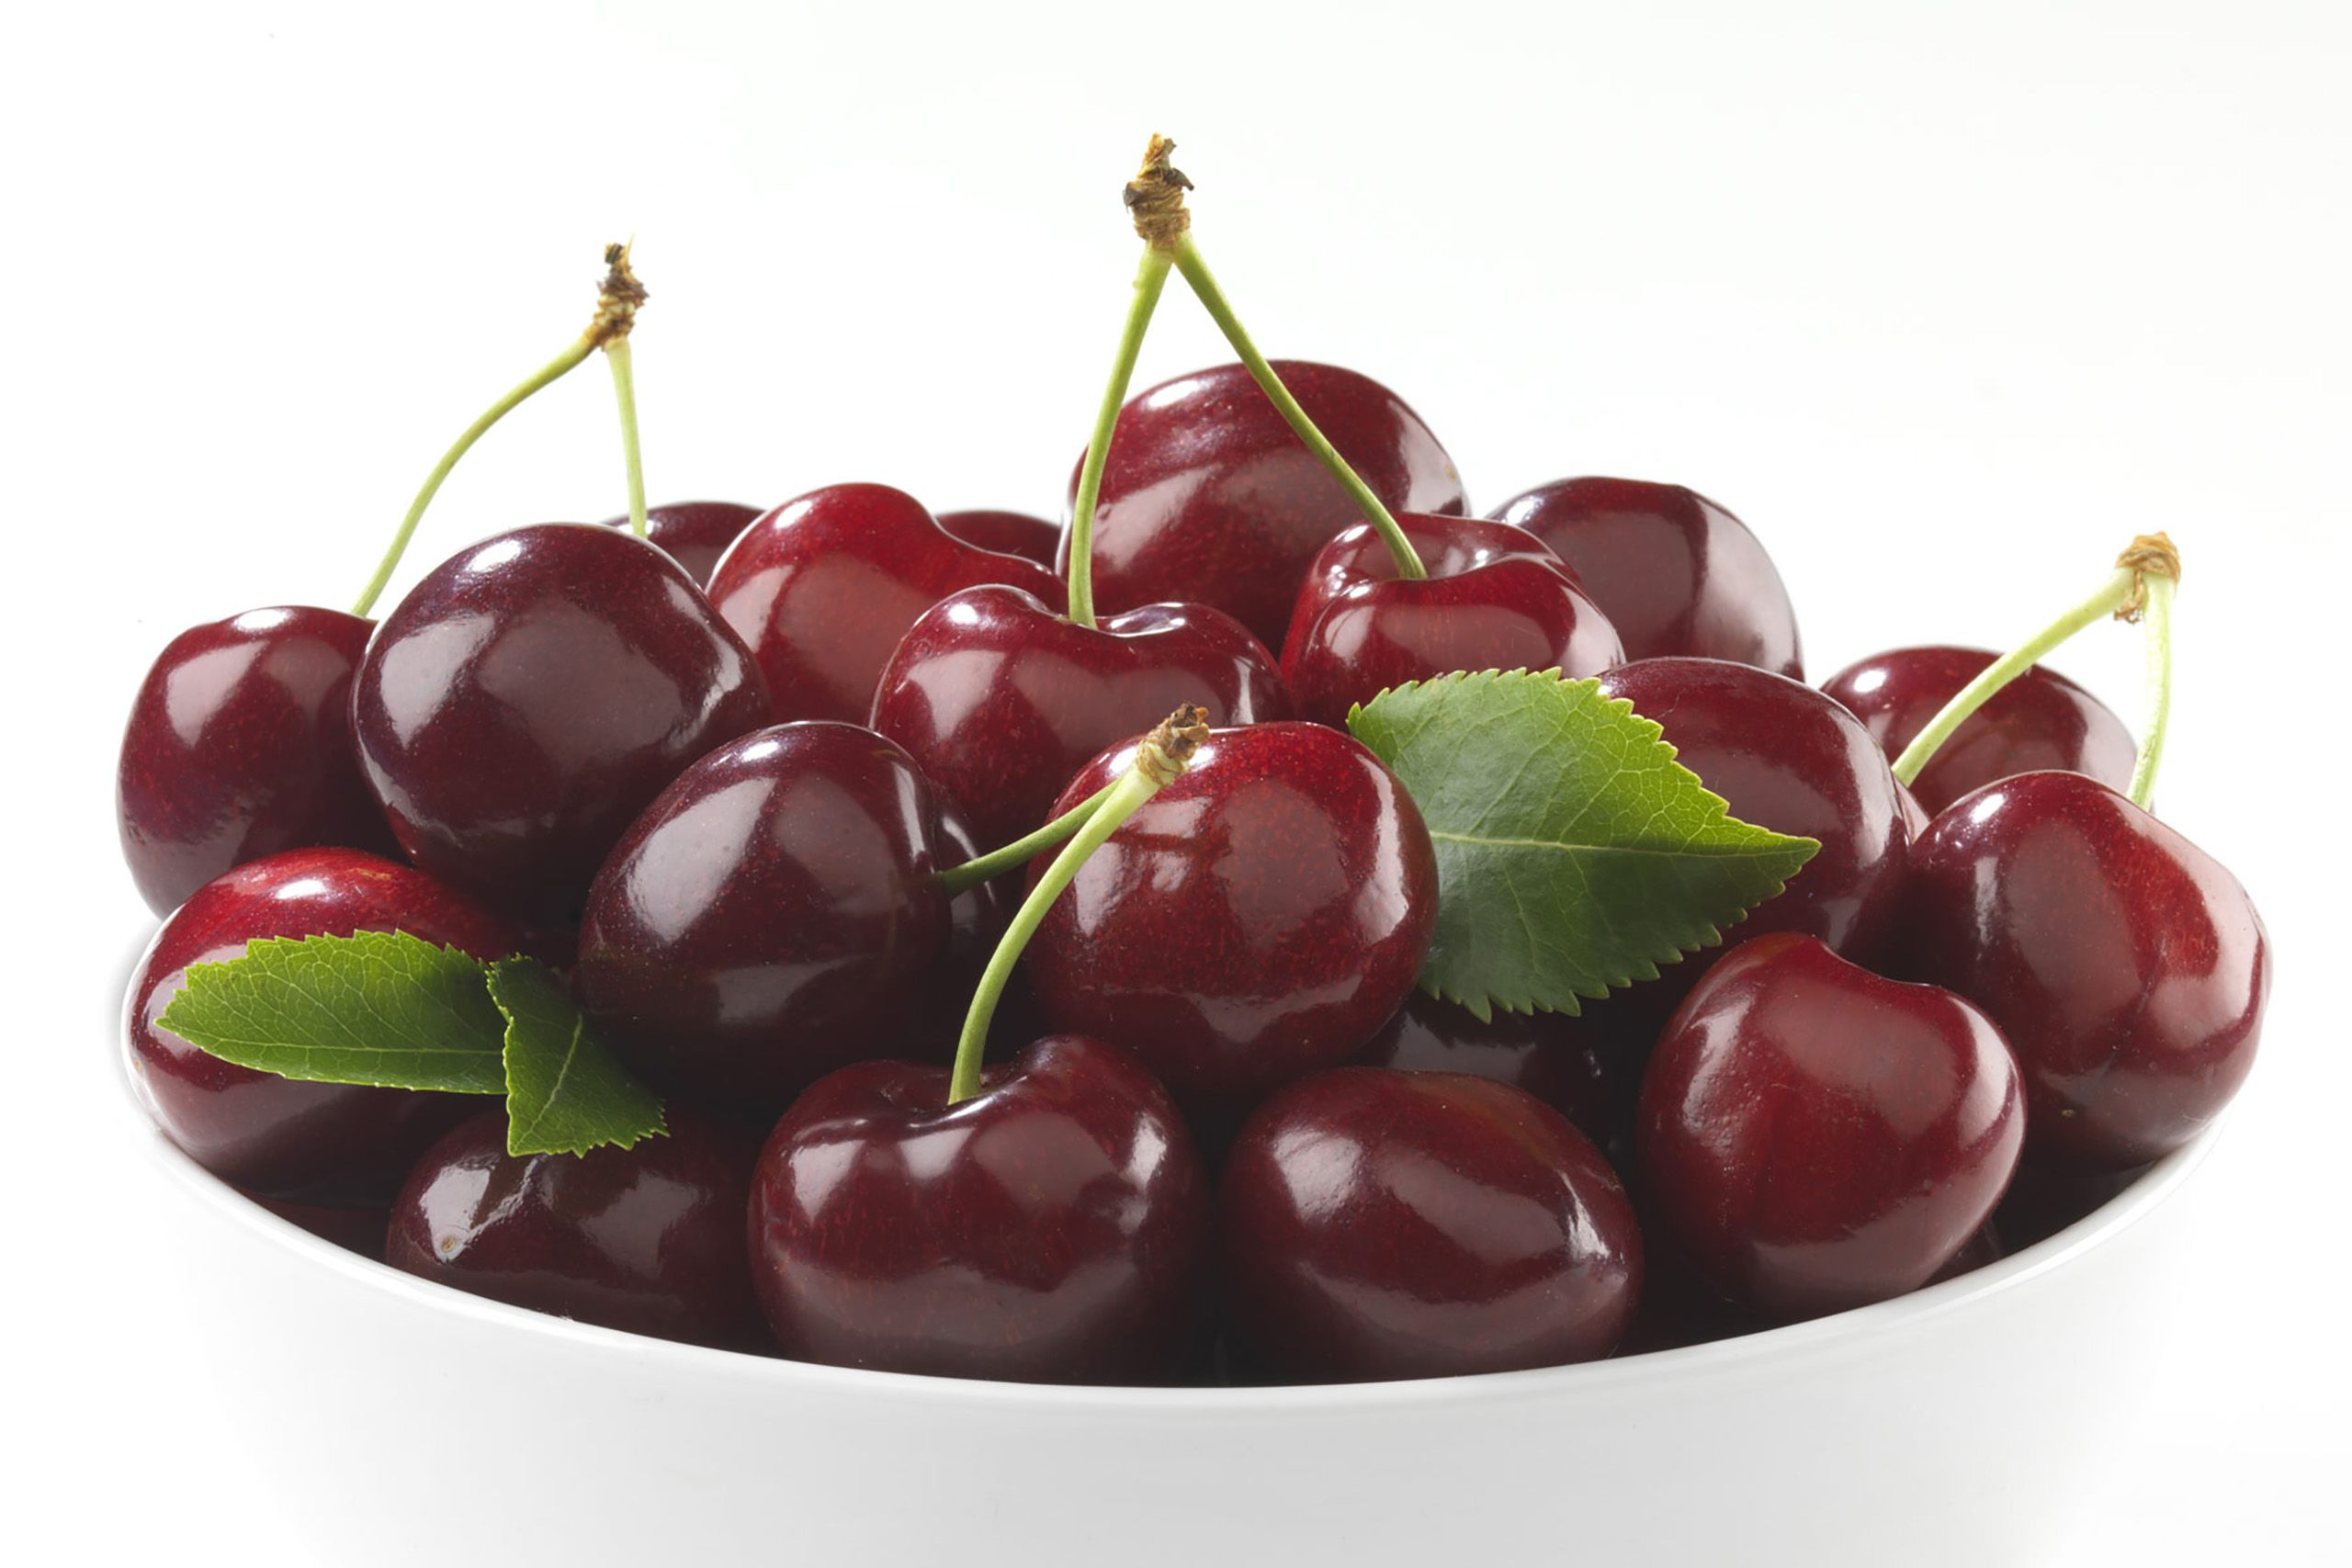 Bowl of Cherries 1.jpg